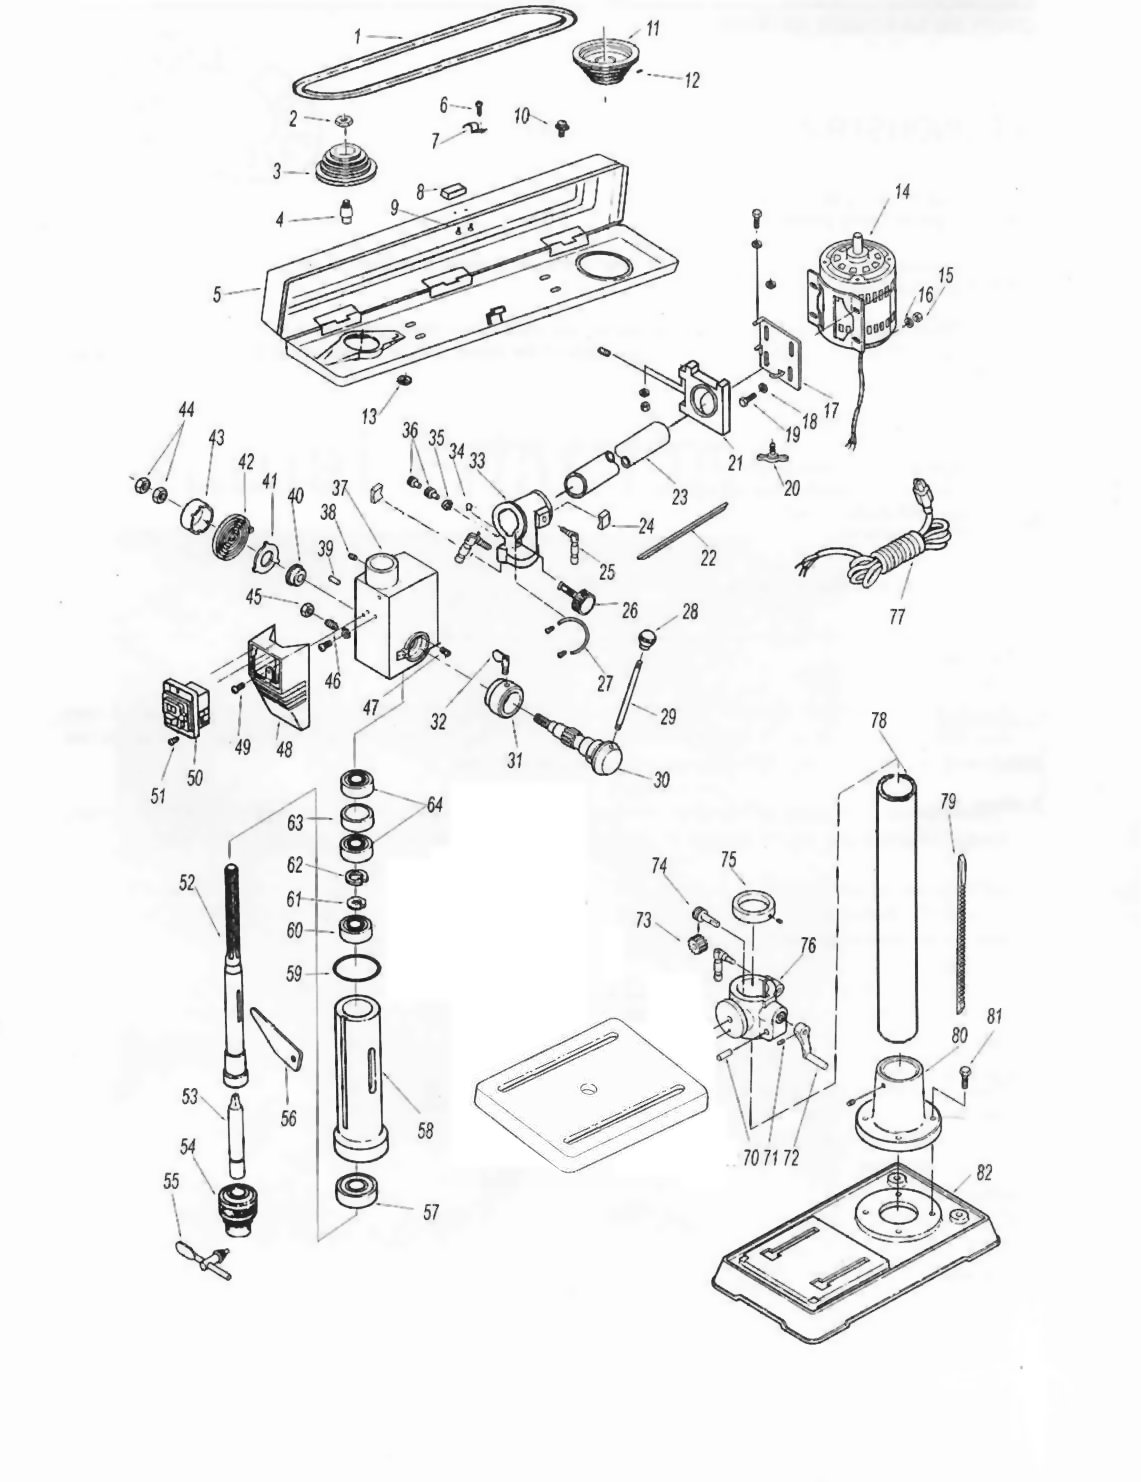 sip 07271 bench radial pillar drill diagram